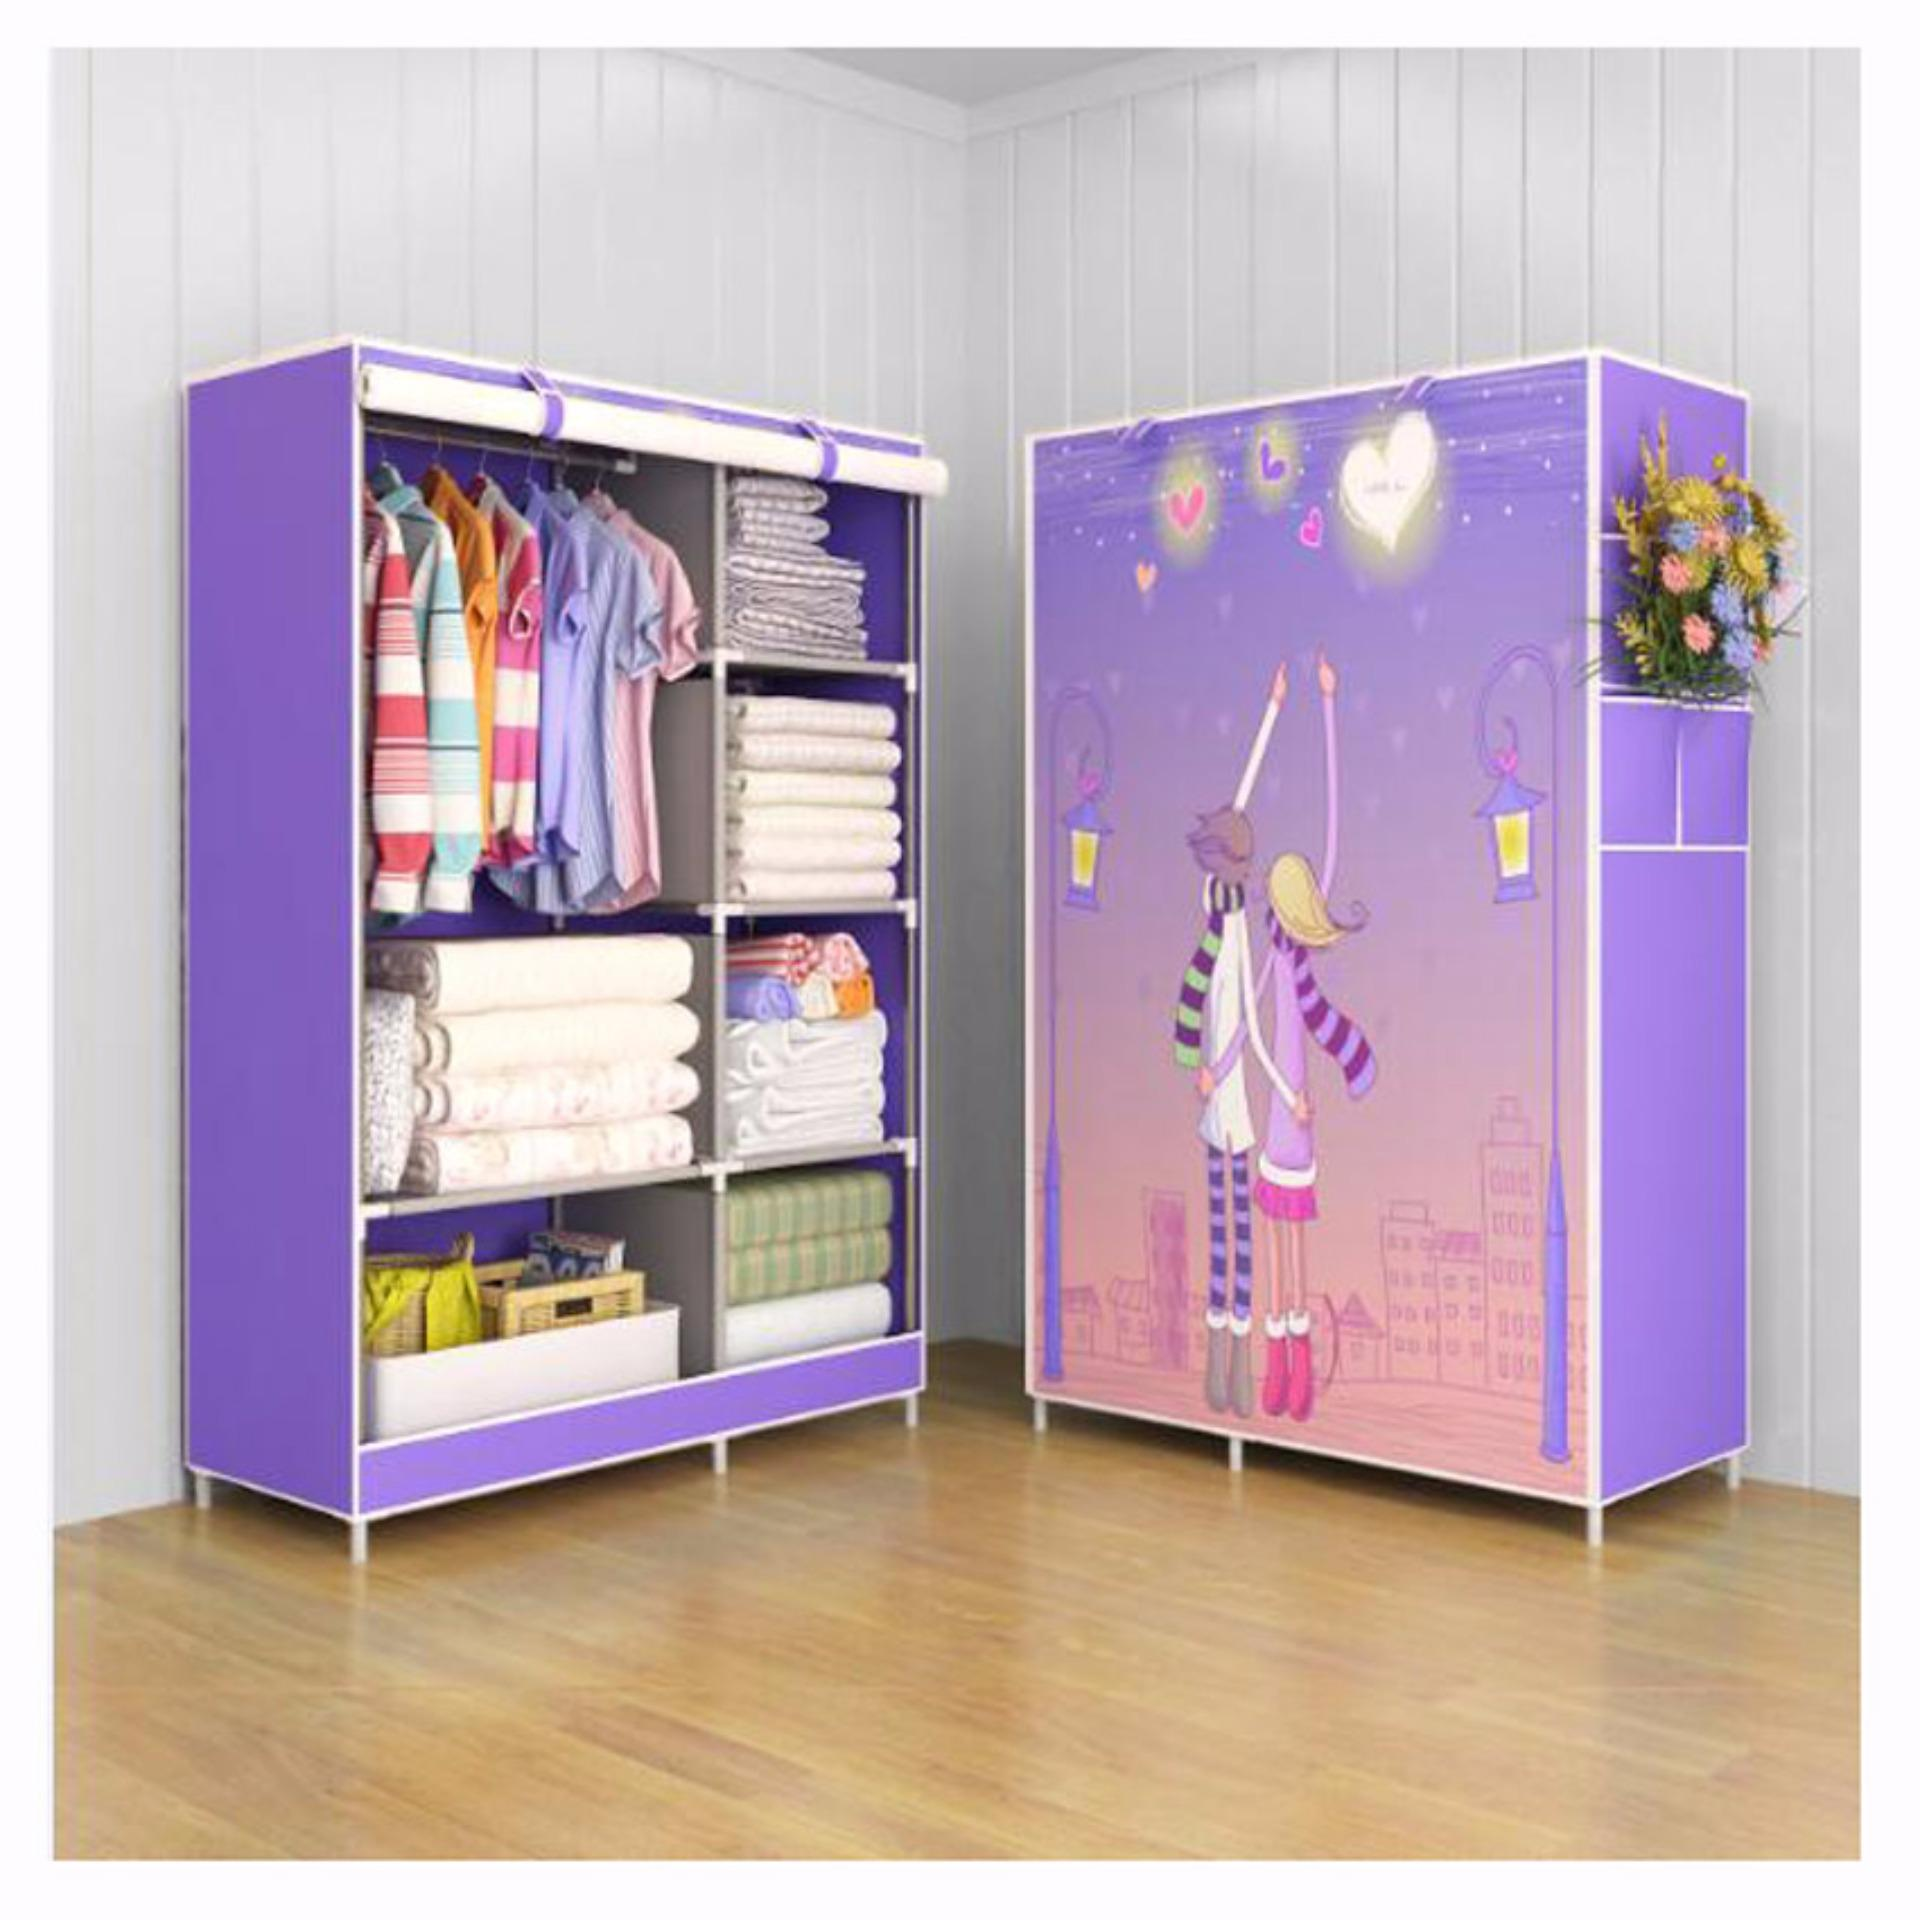 Rak Baju Serbaguna Lemari Baju Serbaguna Wardrobe Cloth Rack with cover Furniture Murah Love Couple